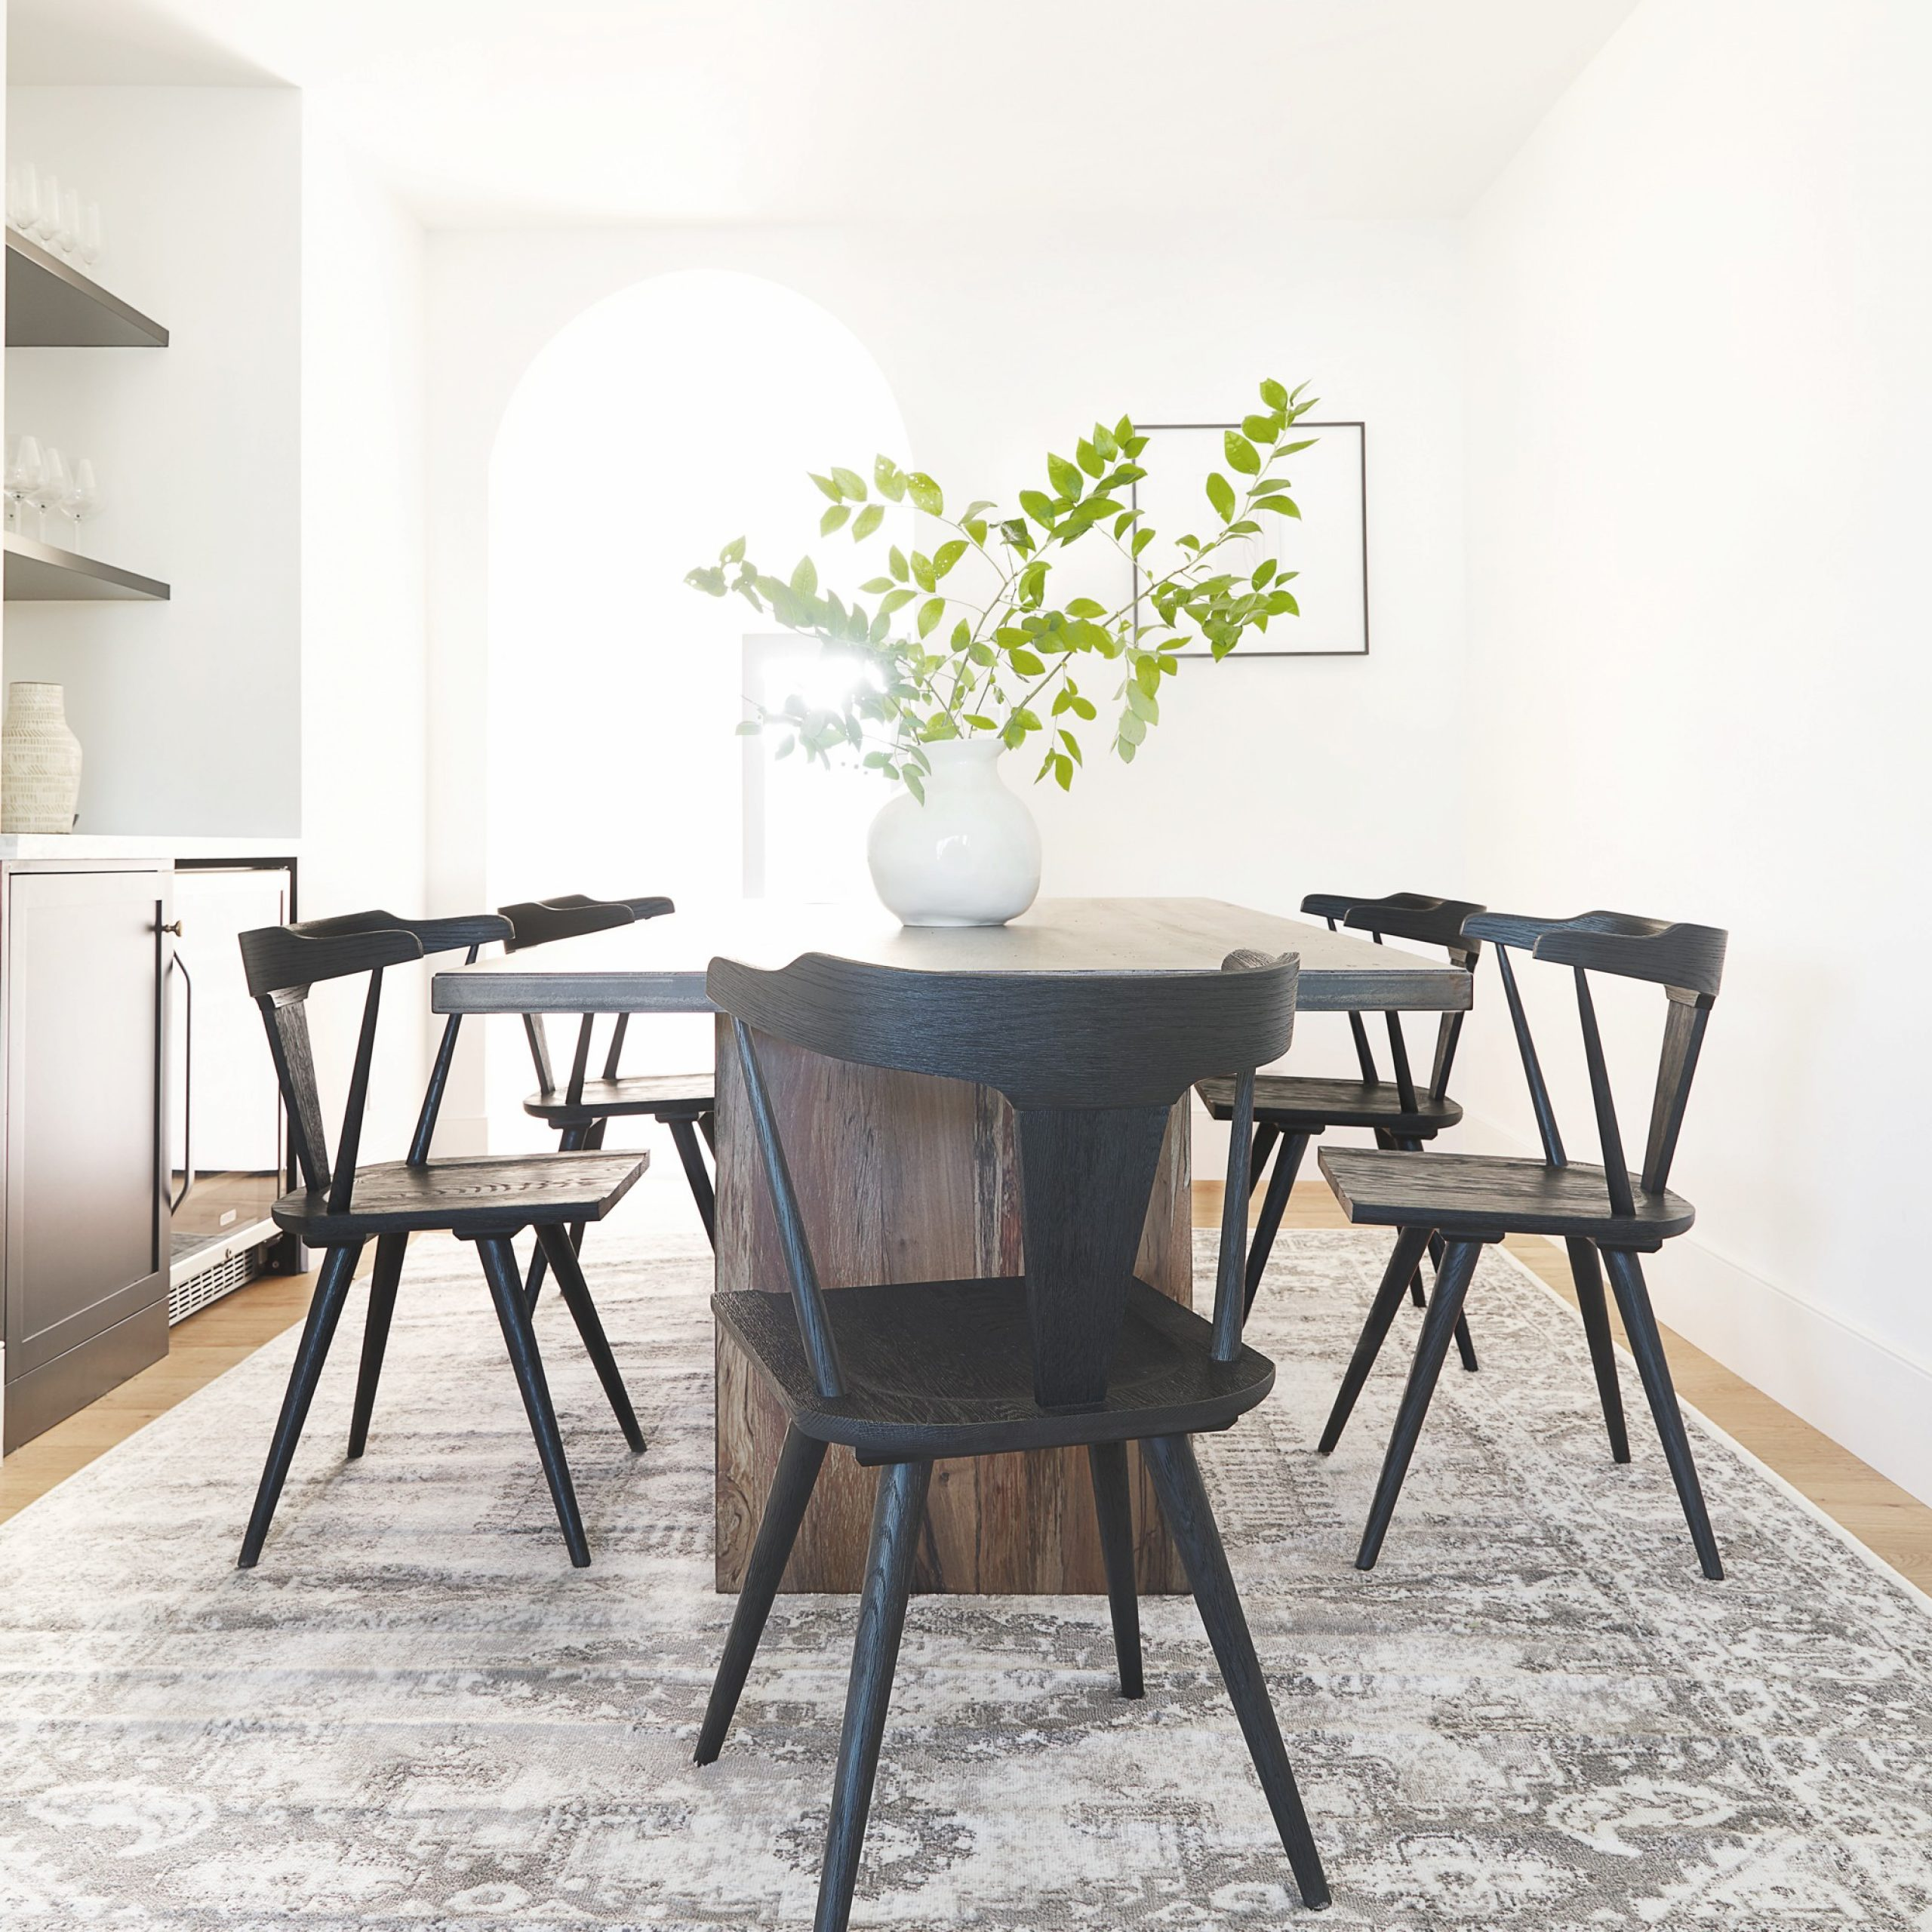 Well Known Morris Round Dining Tables With Regard To Stories – Styling Series: How To Pair Dining Tables And Chairs (View 12 of 30)